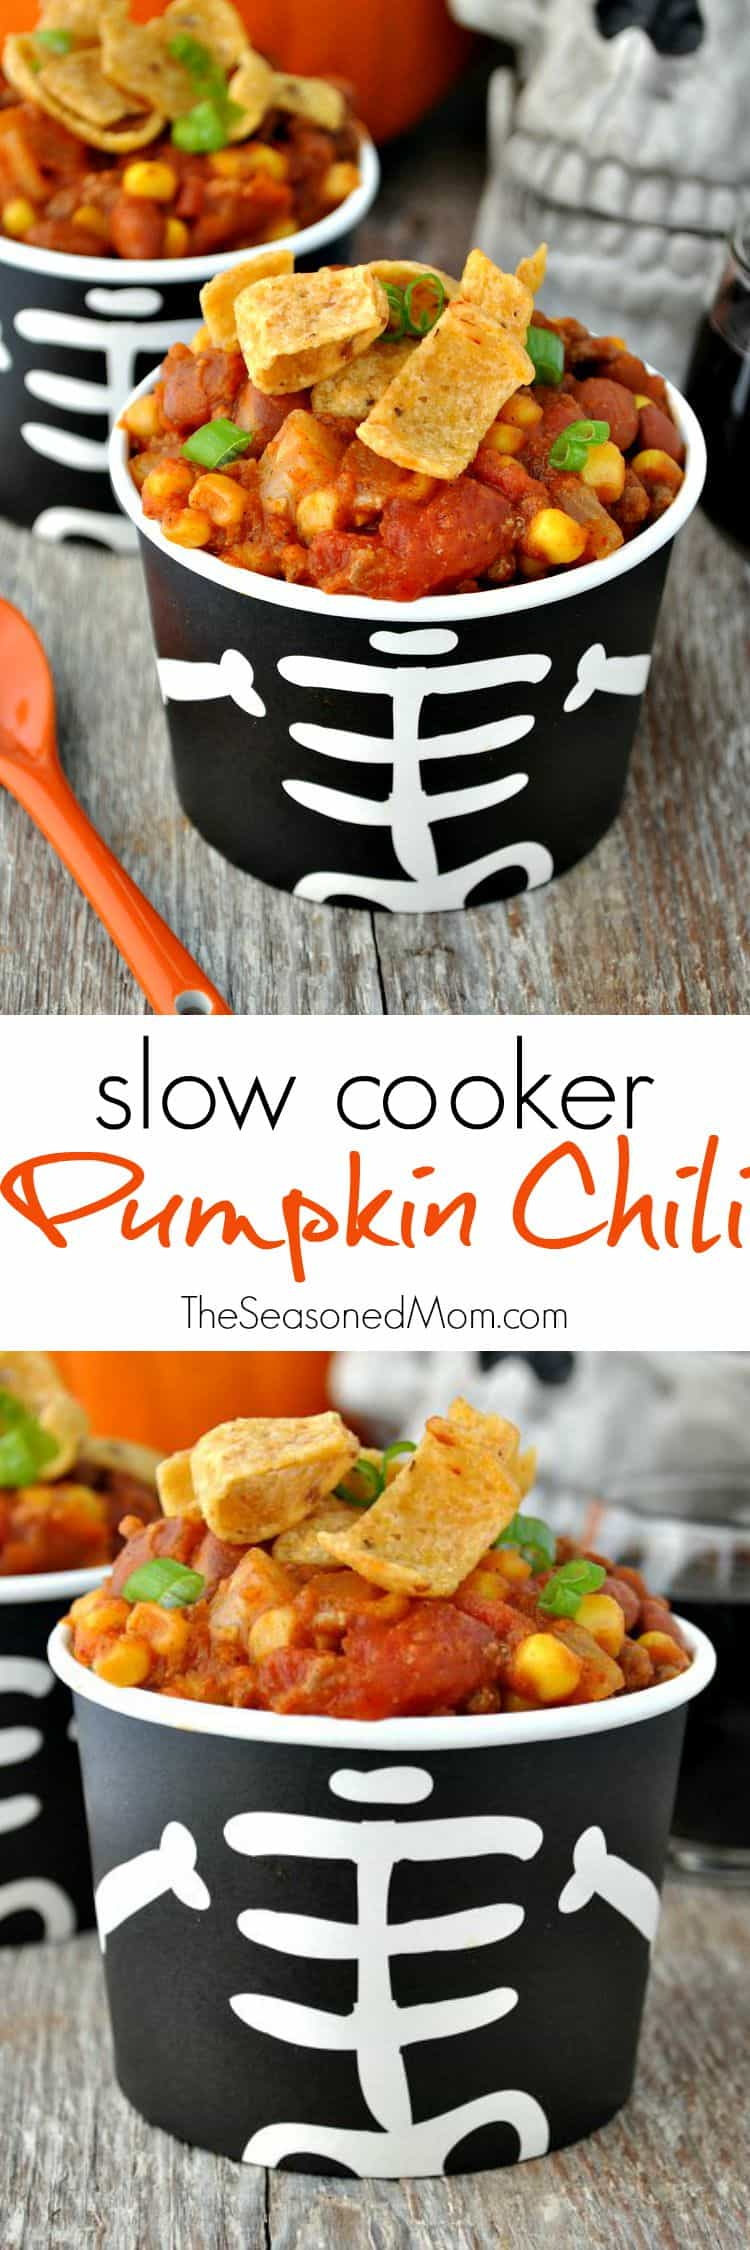 Slow Cooker Pumpkin Chili 2